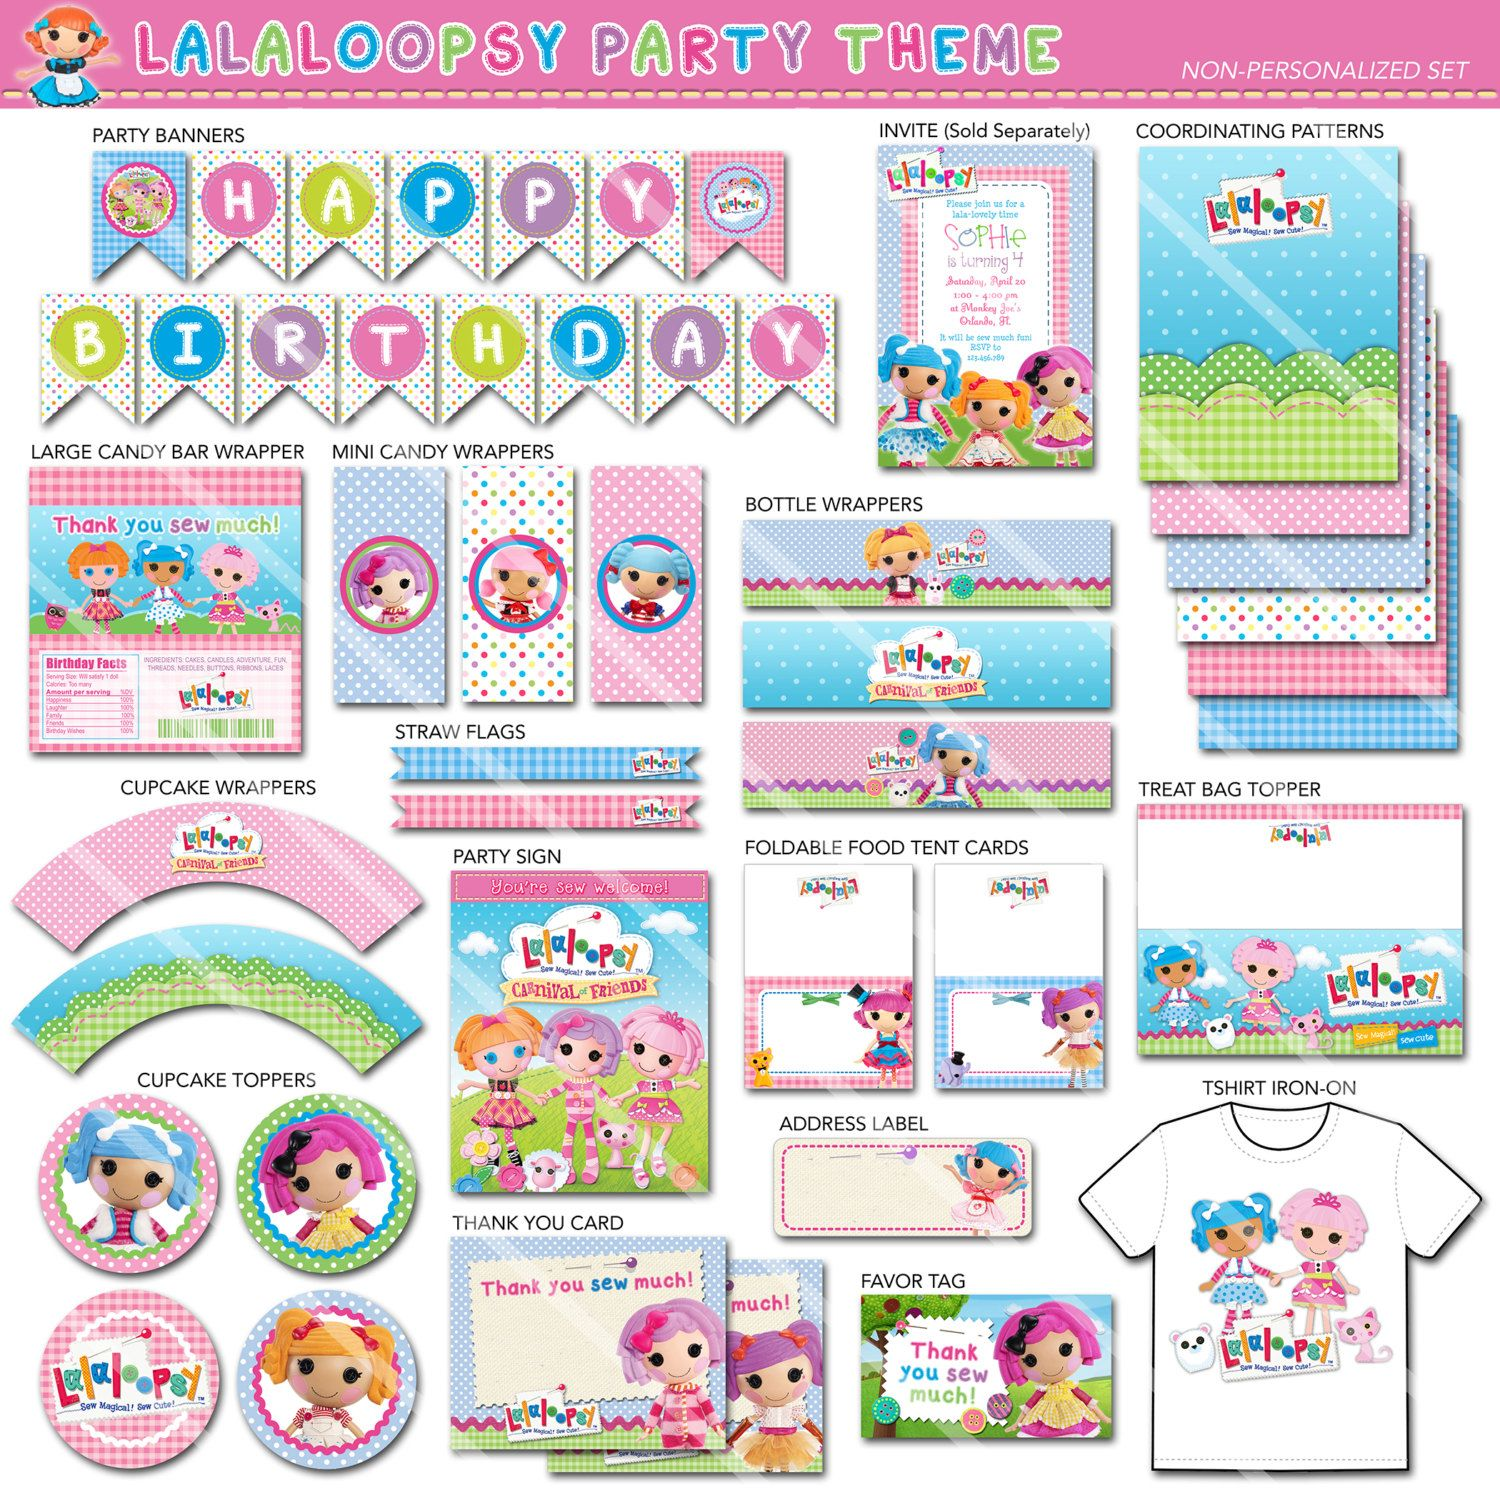 Lalaloopsy Party Package | Lalaloopsy Birthday Party Package ...